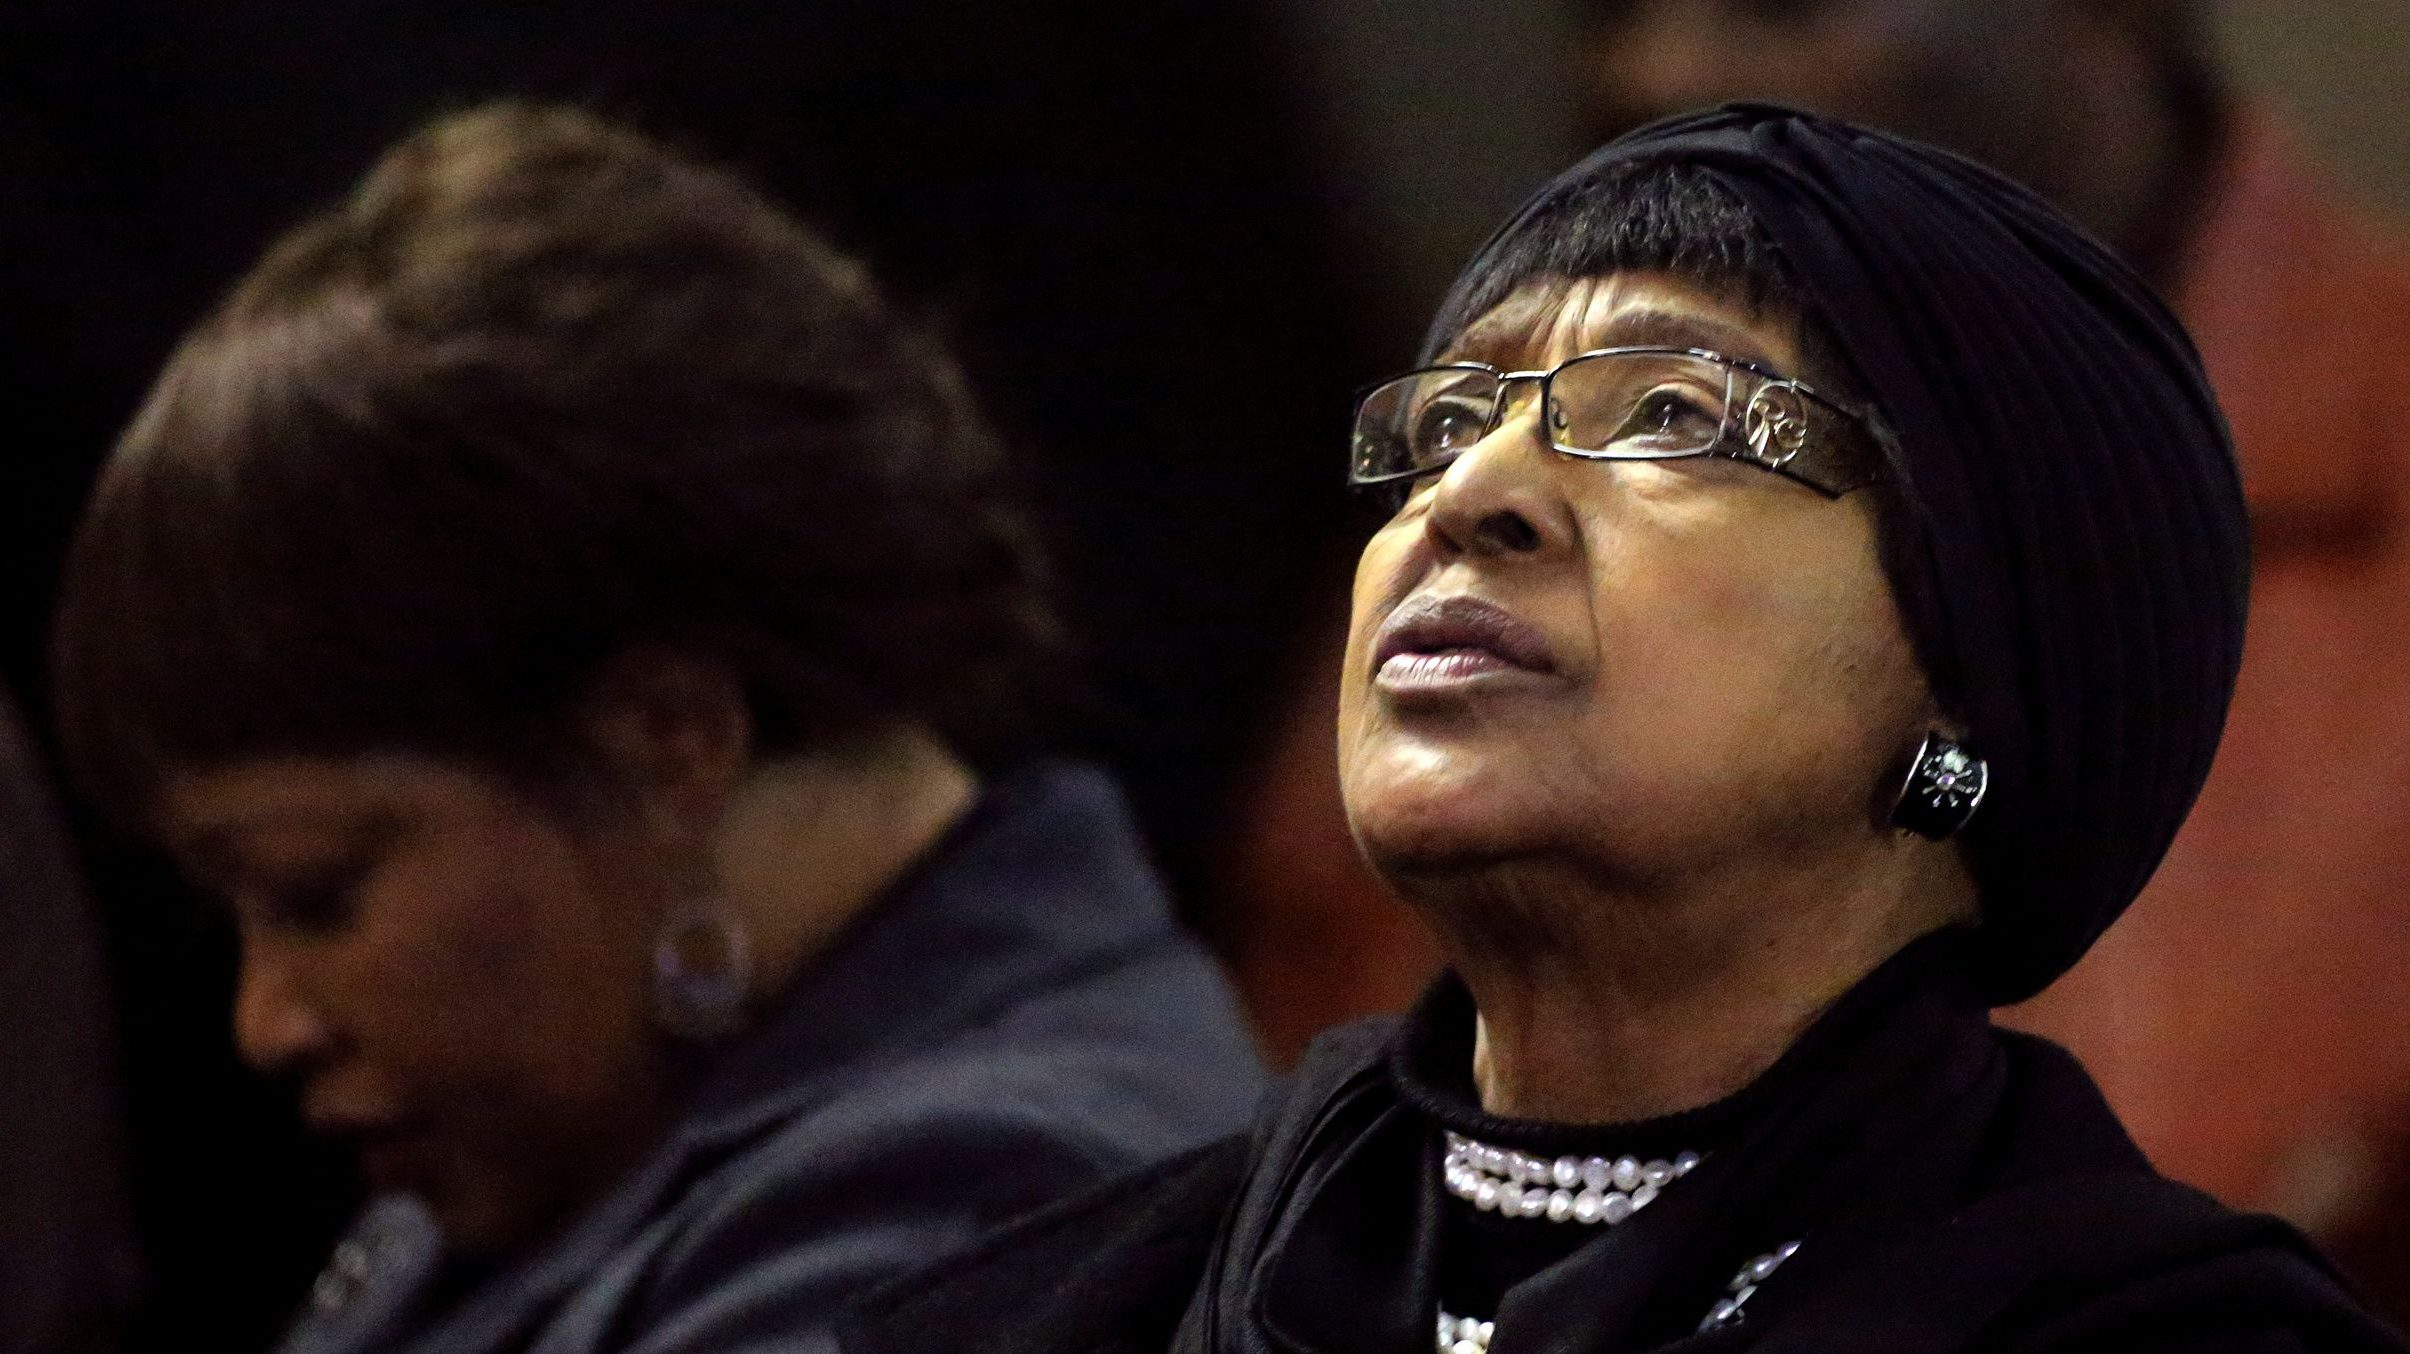 Winnie Madikizela-Mandela, ex-wife of former South African President Nelson Mandela, and her daughter Zindzi attend a prayer service for the ailing Mandela at a church in Johannesburg July 5, 2013.